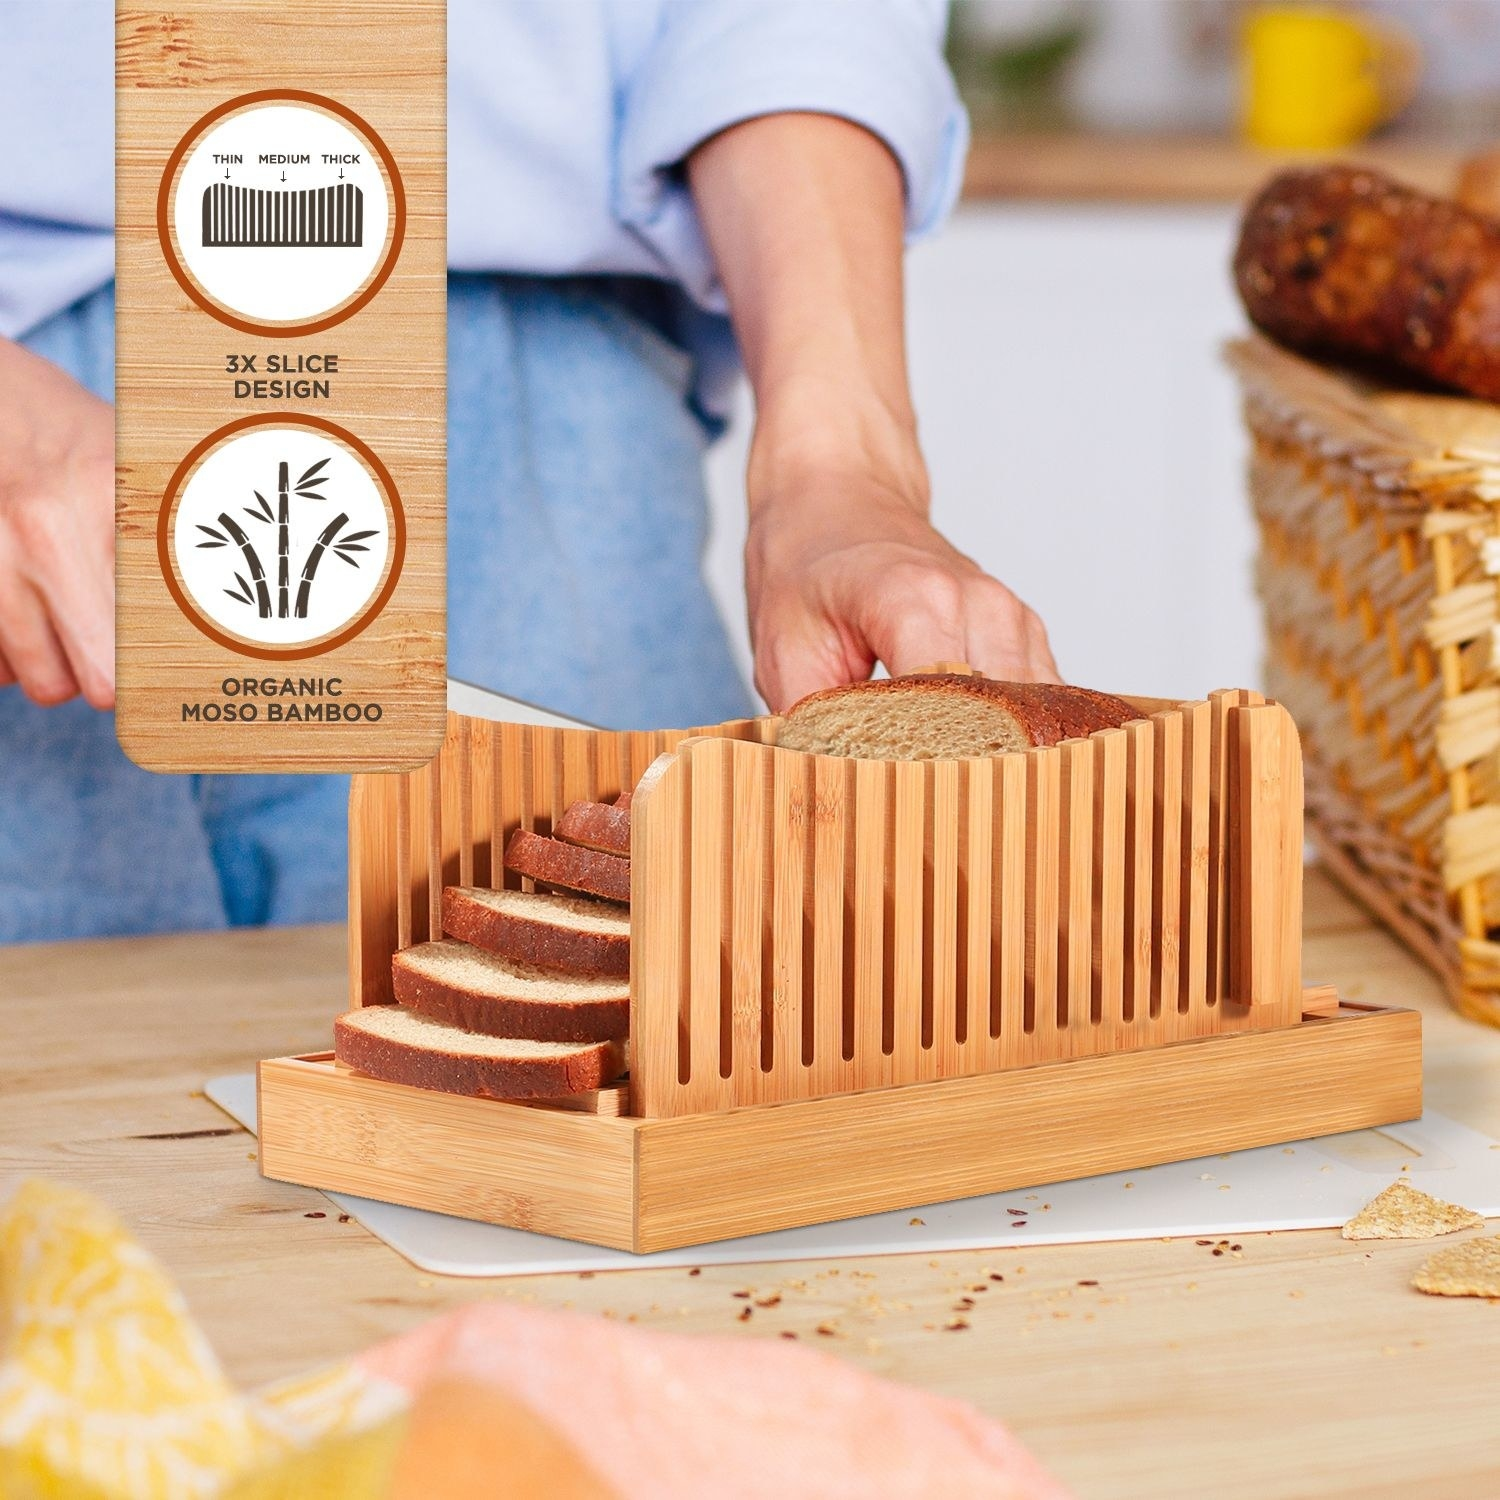 The bread slicer being used to slice bread